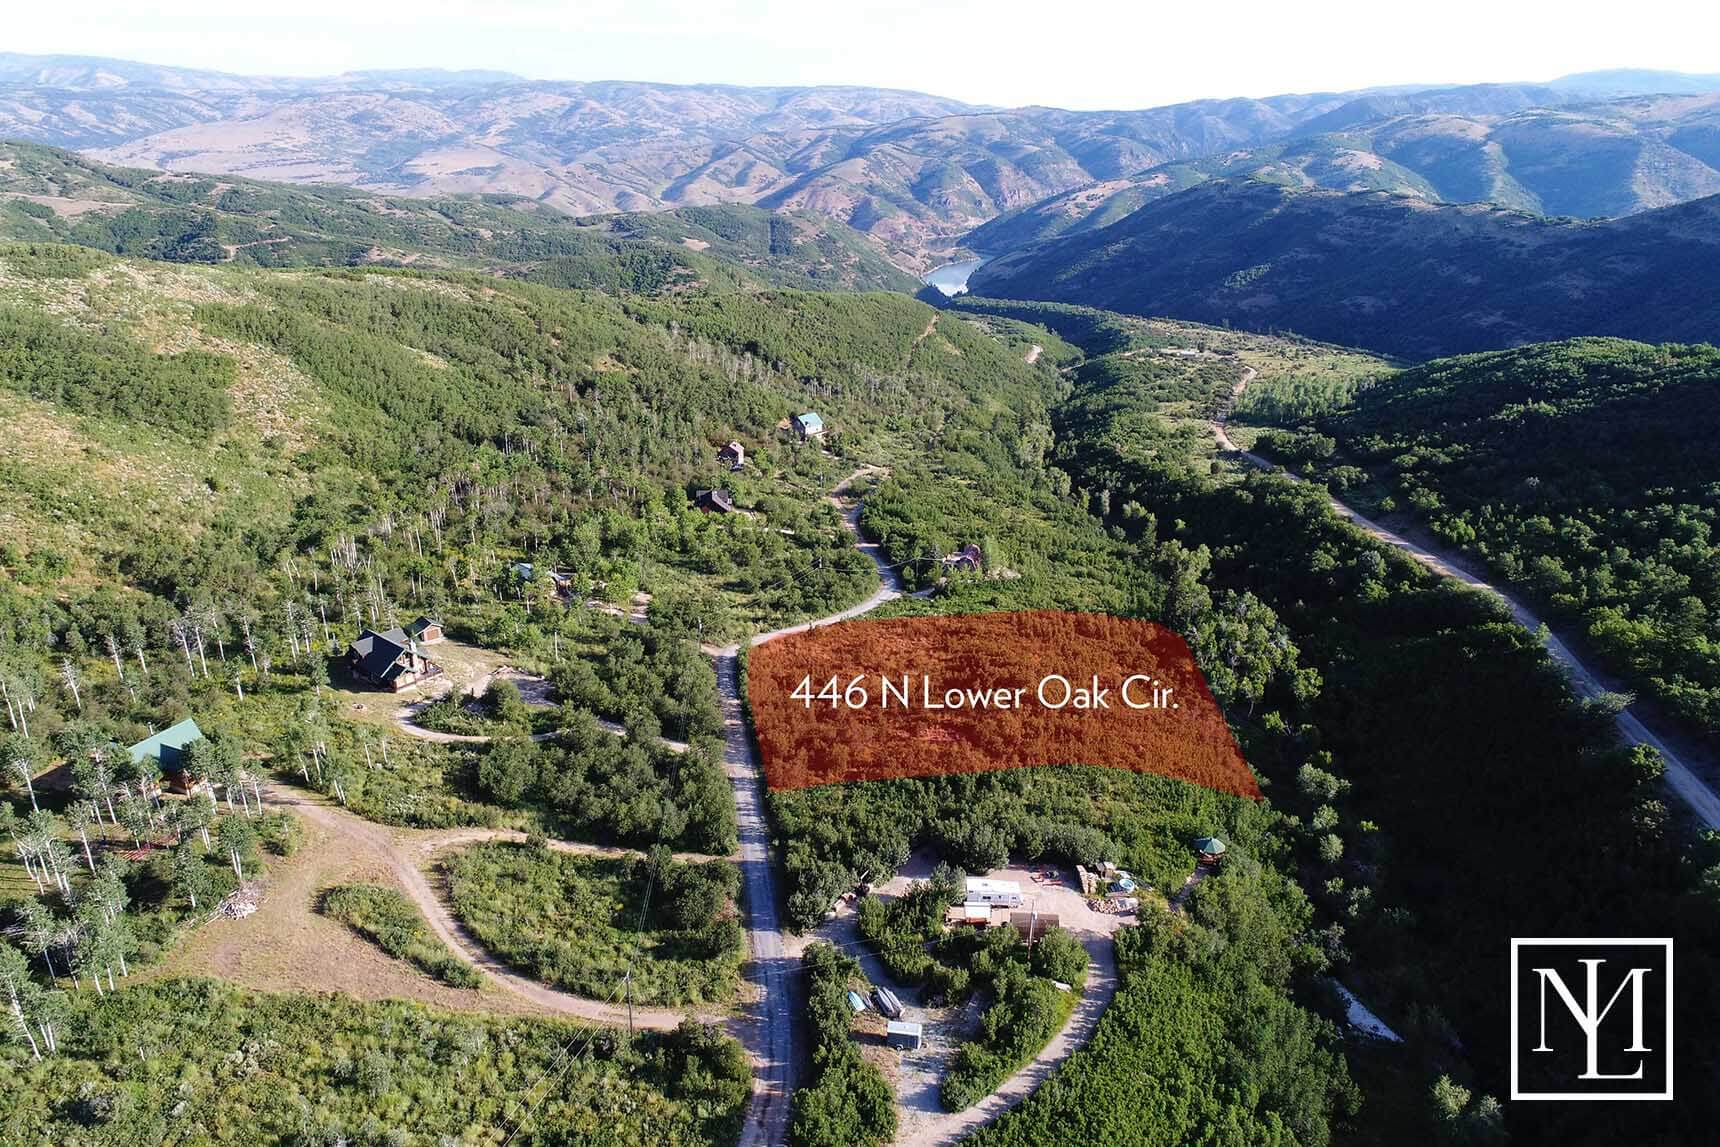 Causey Estates 446 N Lower Oak Circle Lot 59 Huntsville UT 84317 01